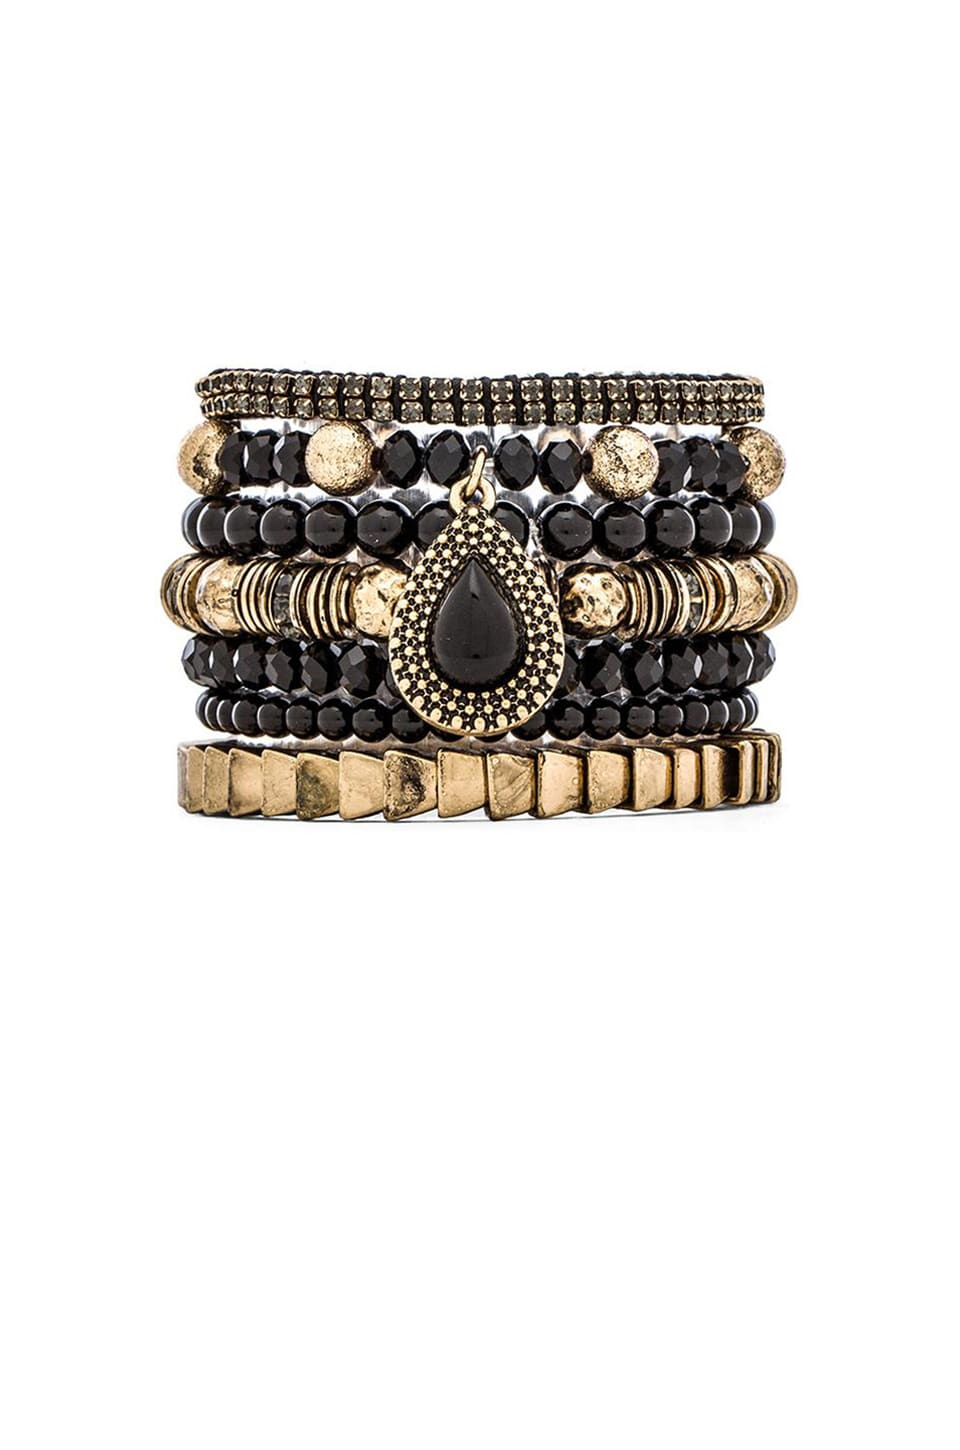 Samantha Wills Moments By The Moonlight Bracelet Set in Gold